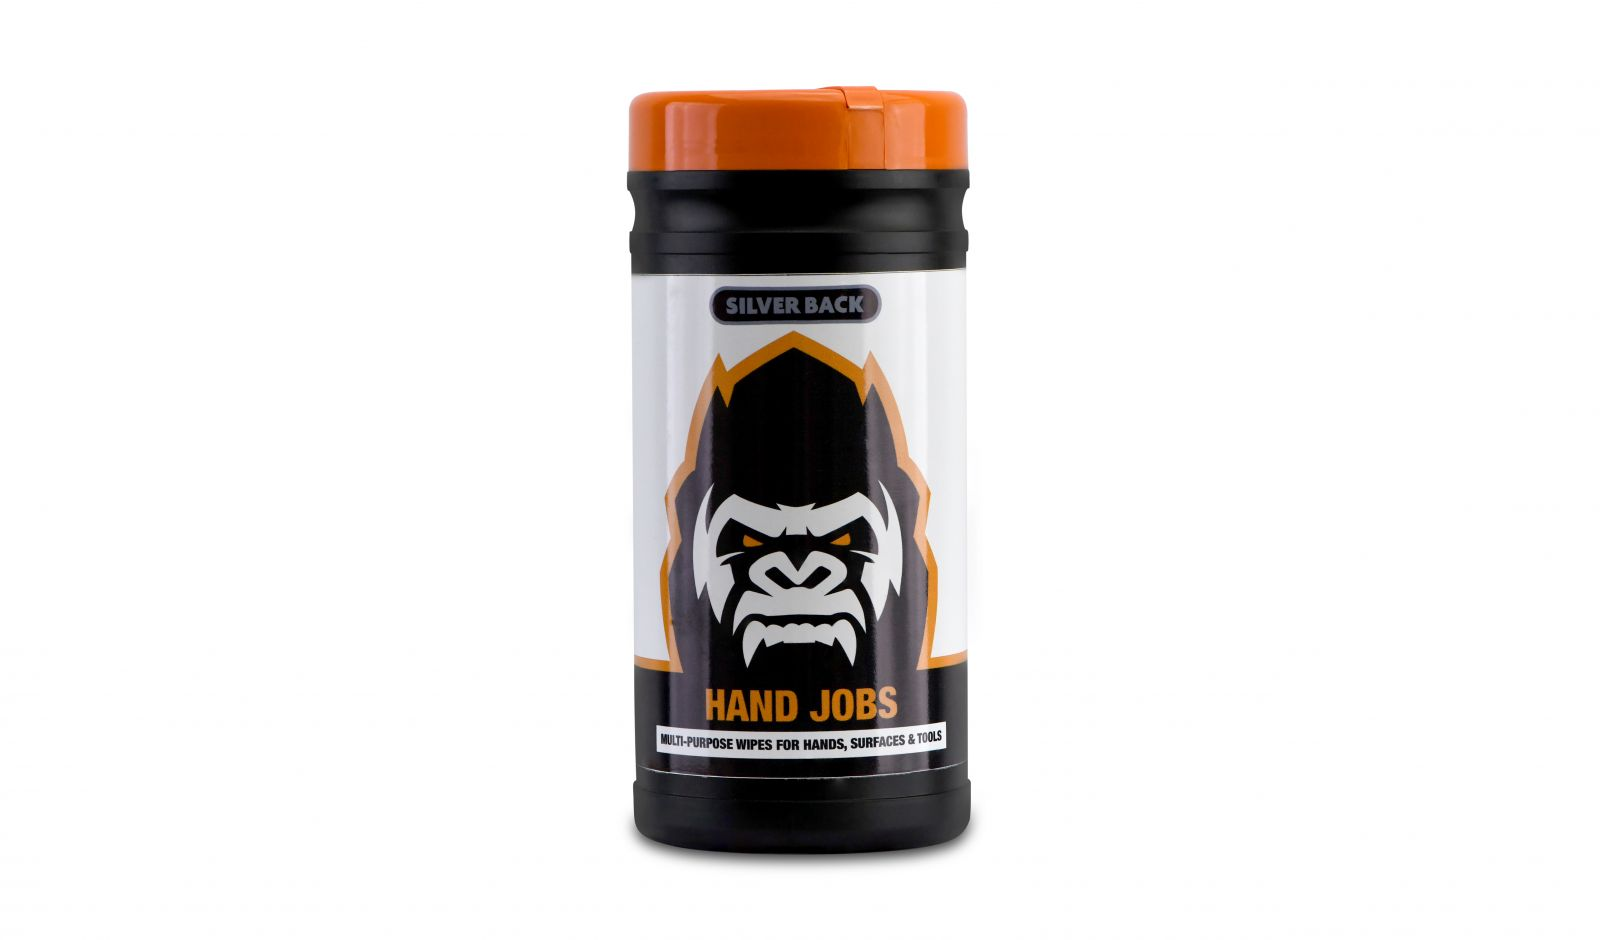 silverback products - 670932S image